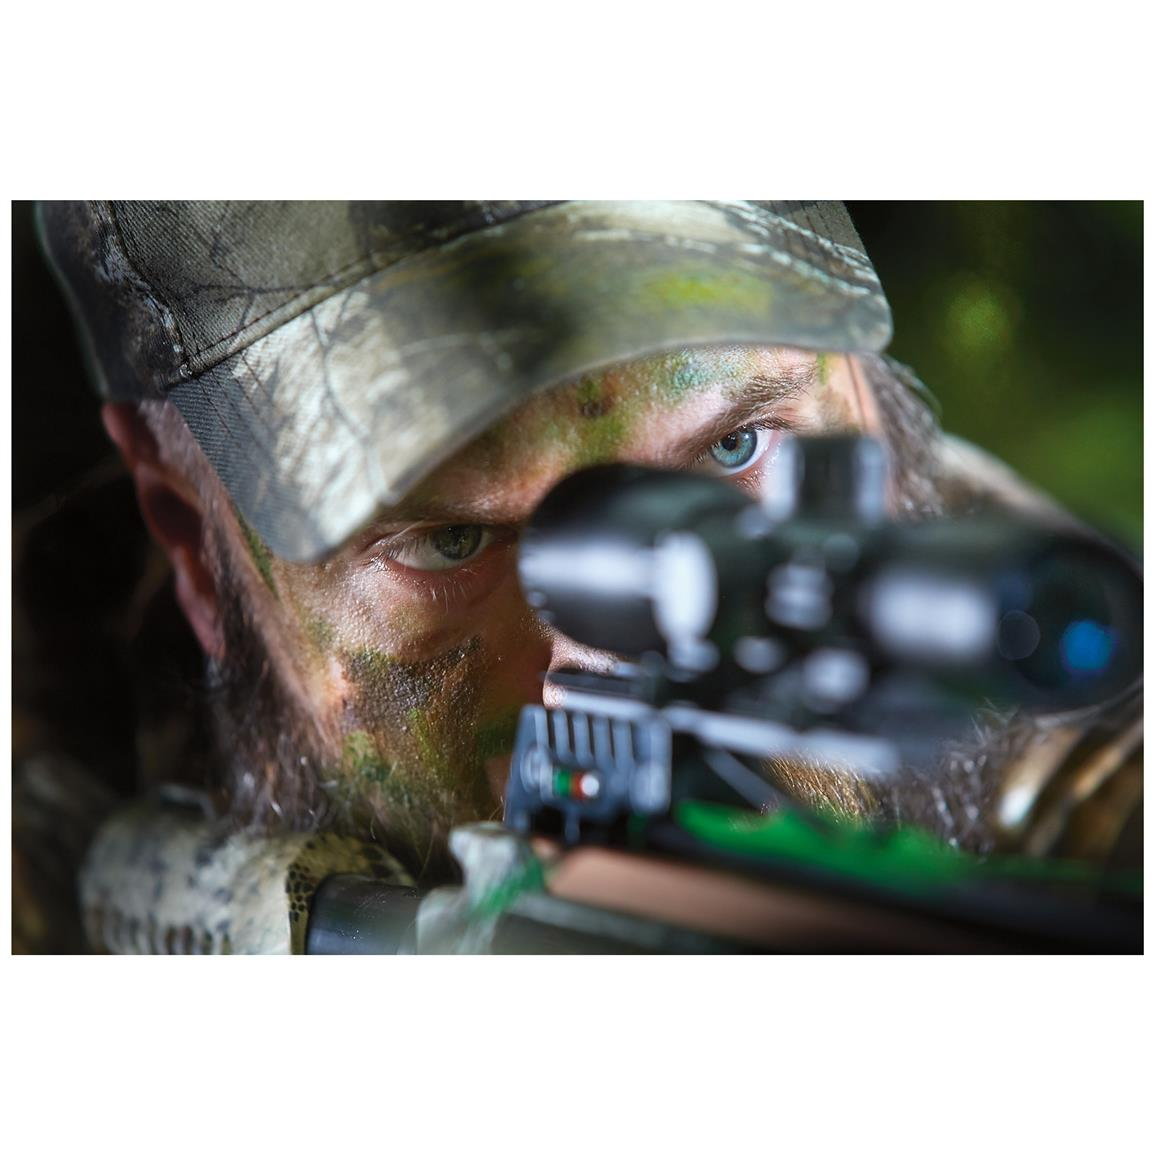 Includes Illuminated 4x32 multi-range scope